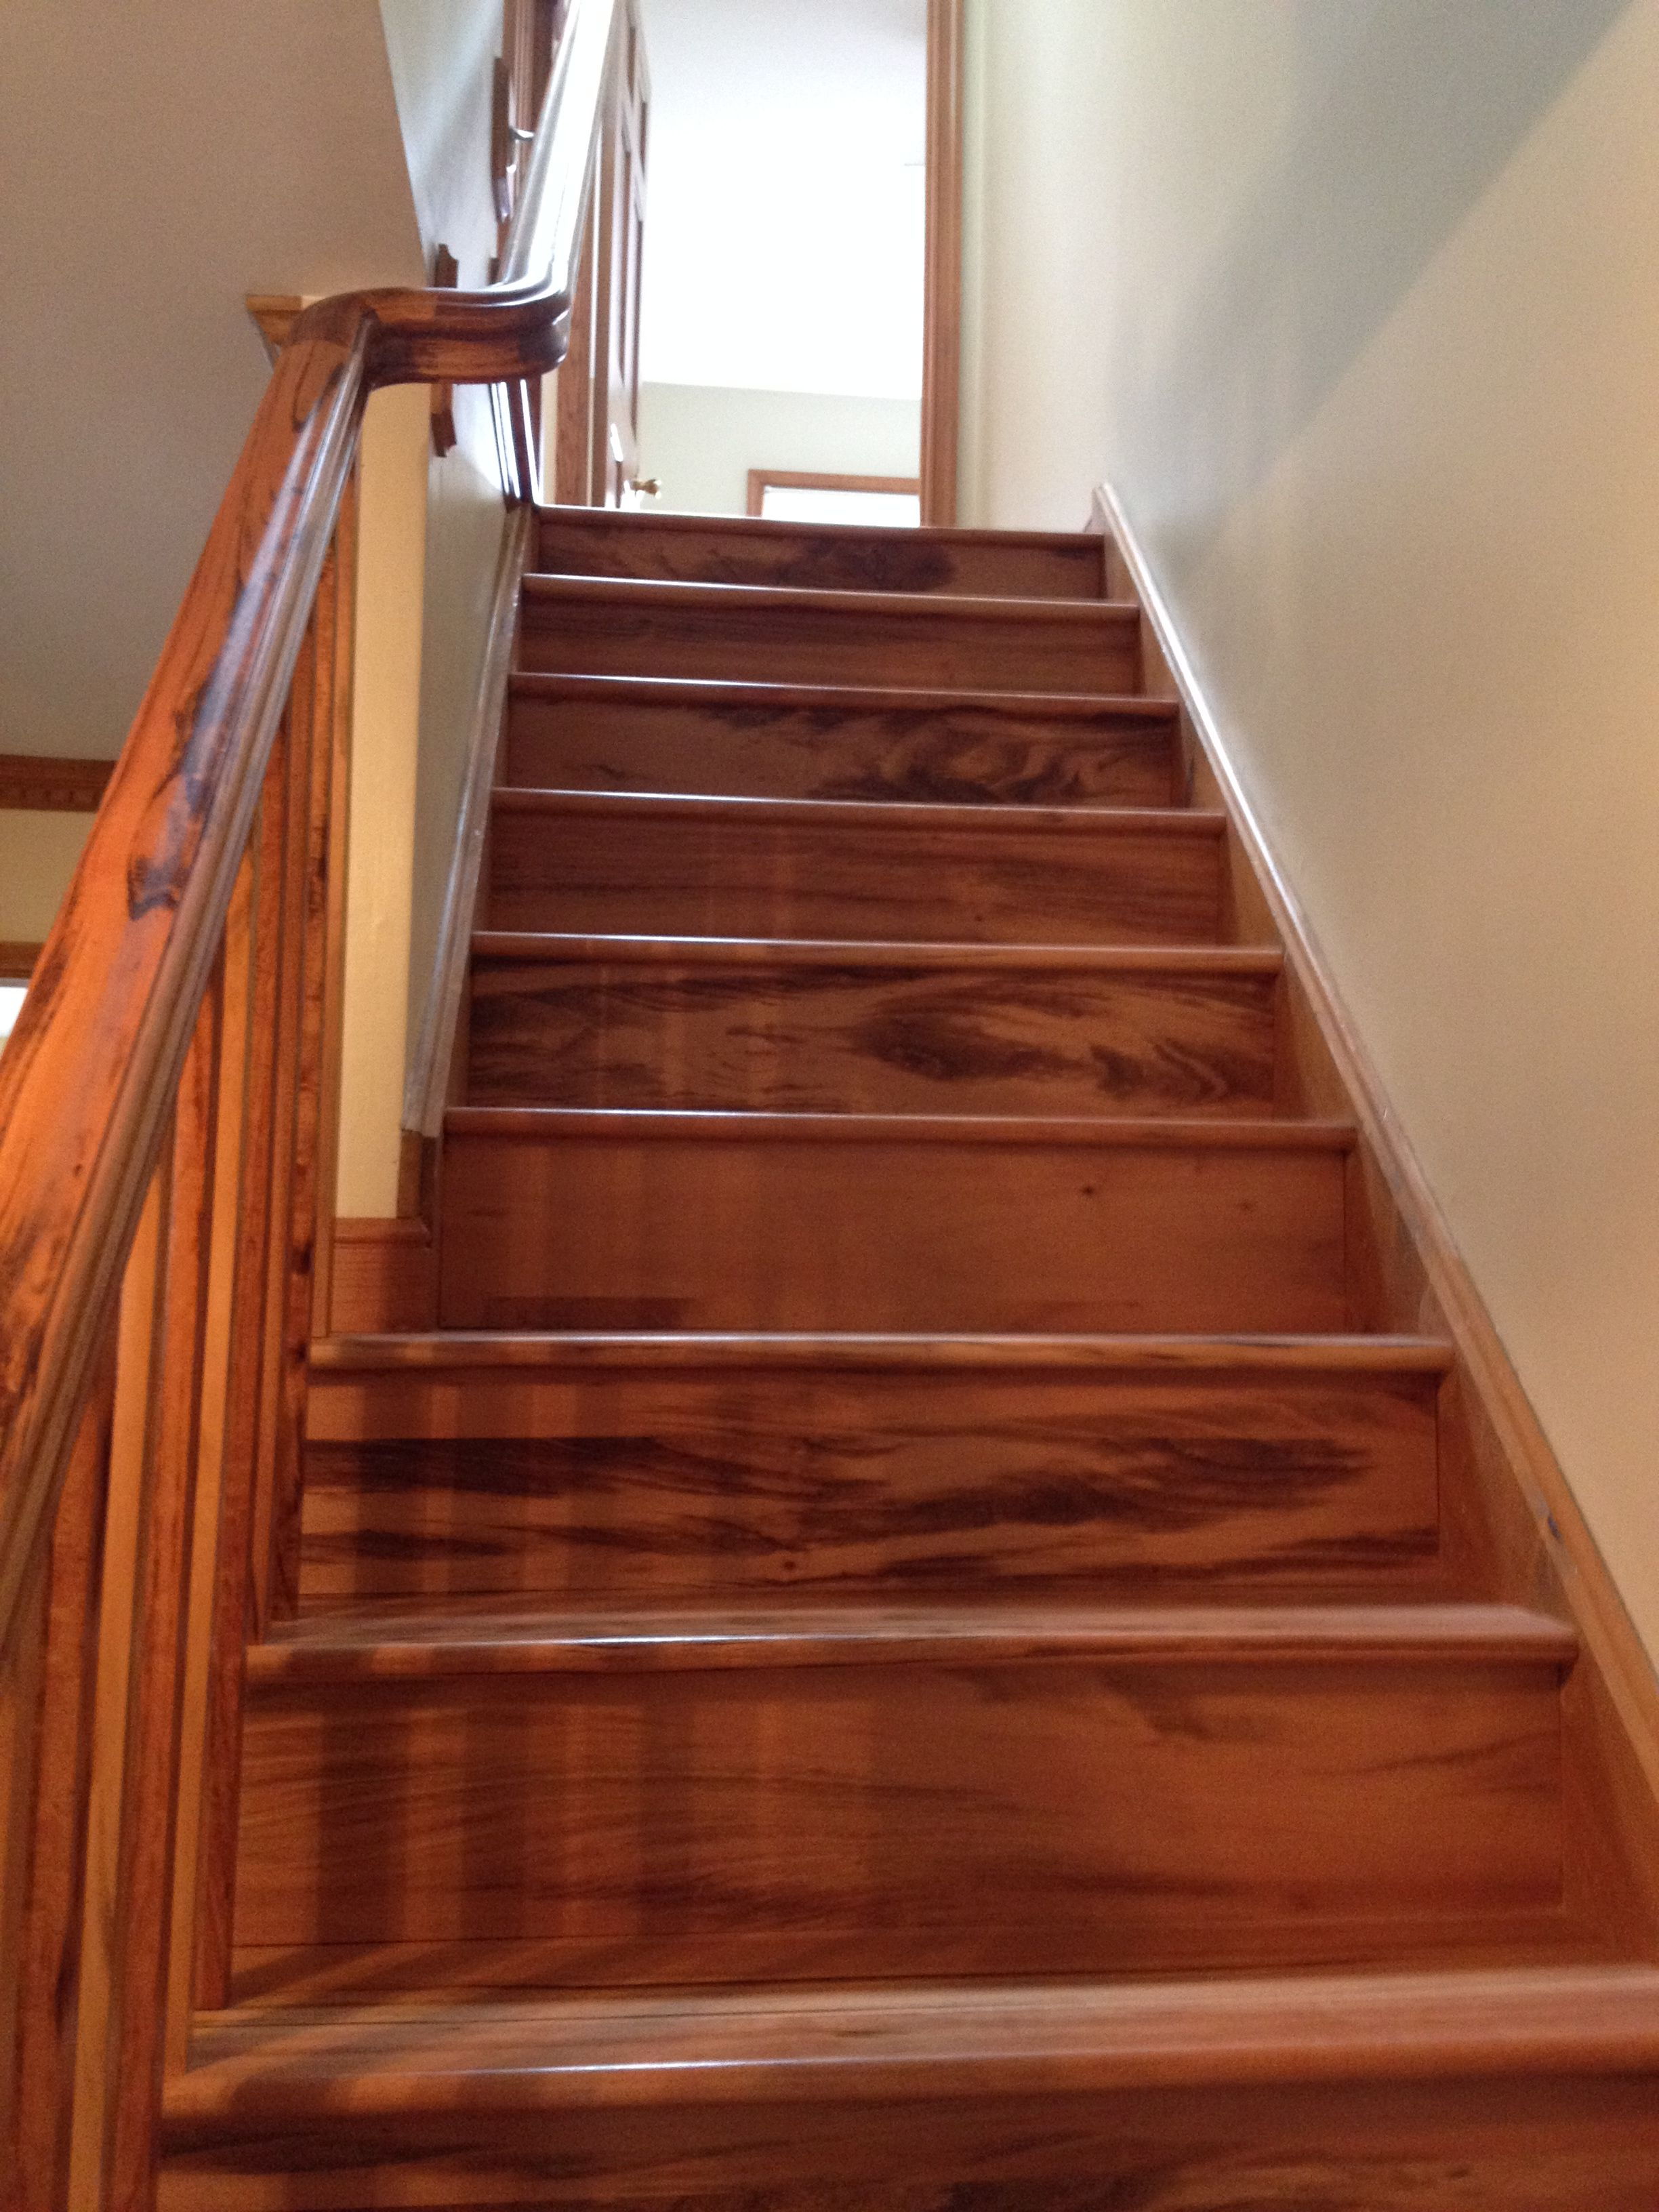 Solid Wood Stair Treads New Replacement Interior Stair Parts | Best Wood For Stair Treads | Flooring | Reclaimed Wood | Pine | Non Slip | Stair Climber